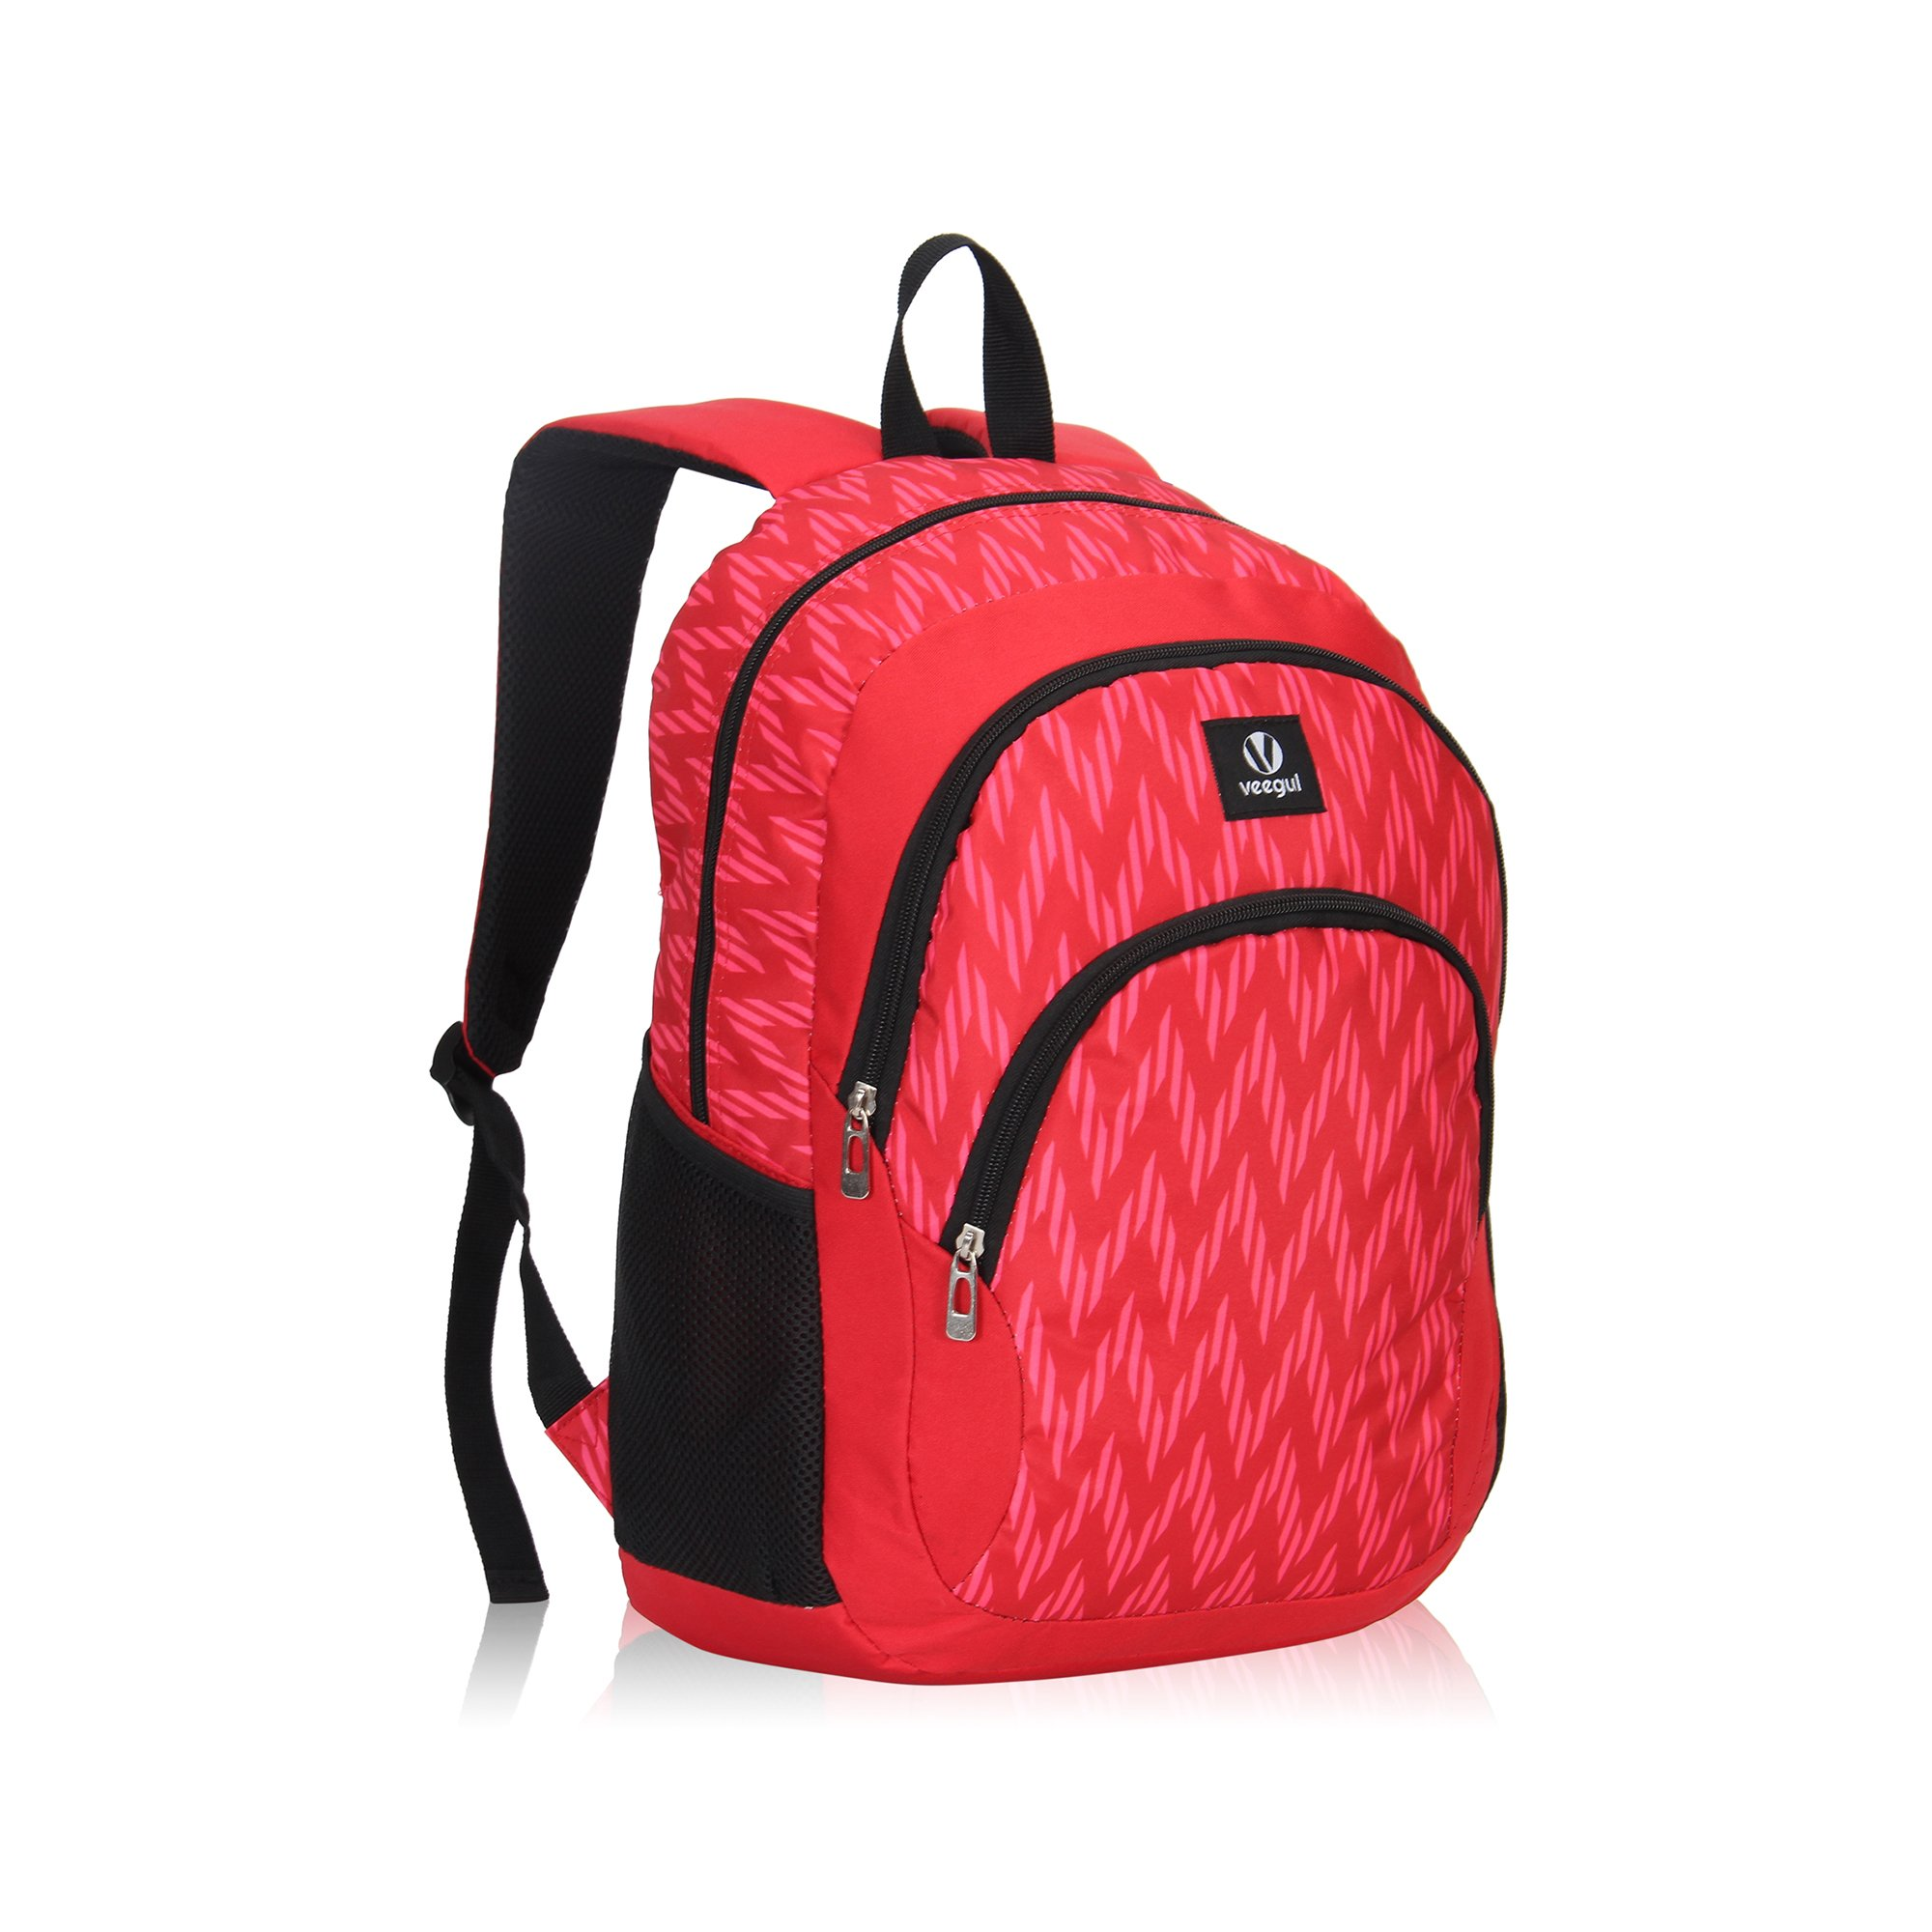 Veegul Cool Backpack Kids Sturdy Schoolbags Back to School Backpack for Boys Girls,Red